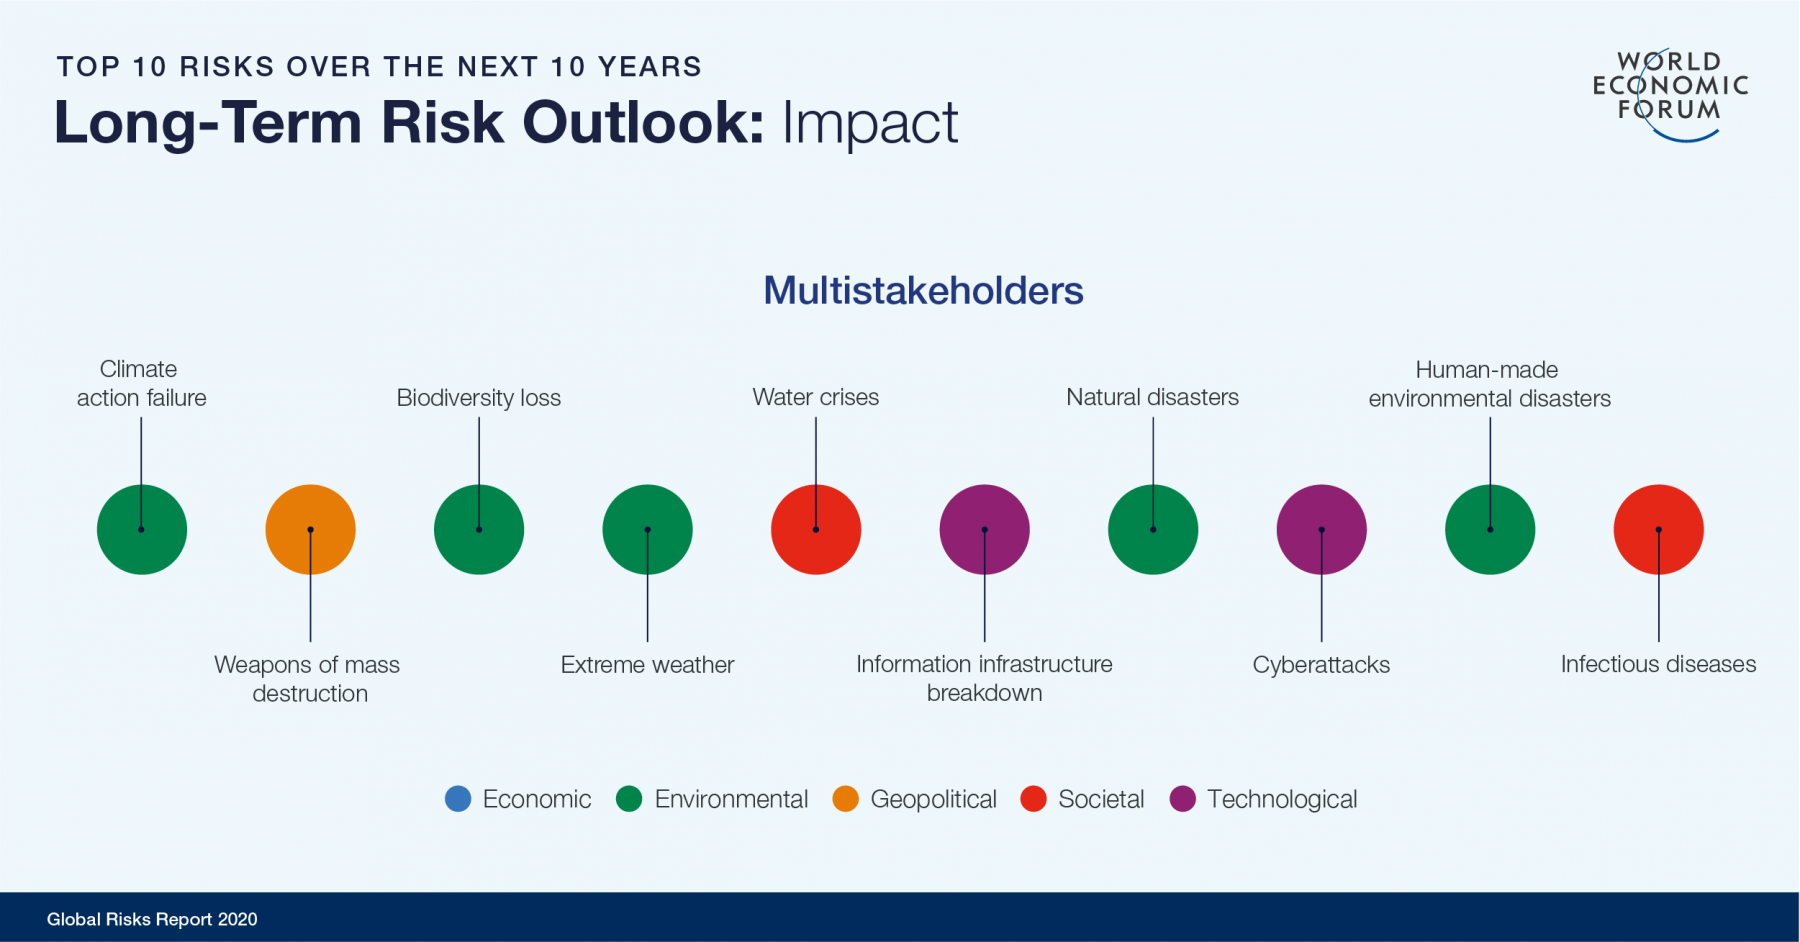 Sharables-charts_Sharable-Long-Term-Risk-Outlook-Multistakeholders-Impact